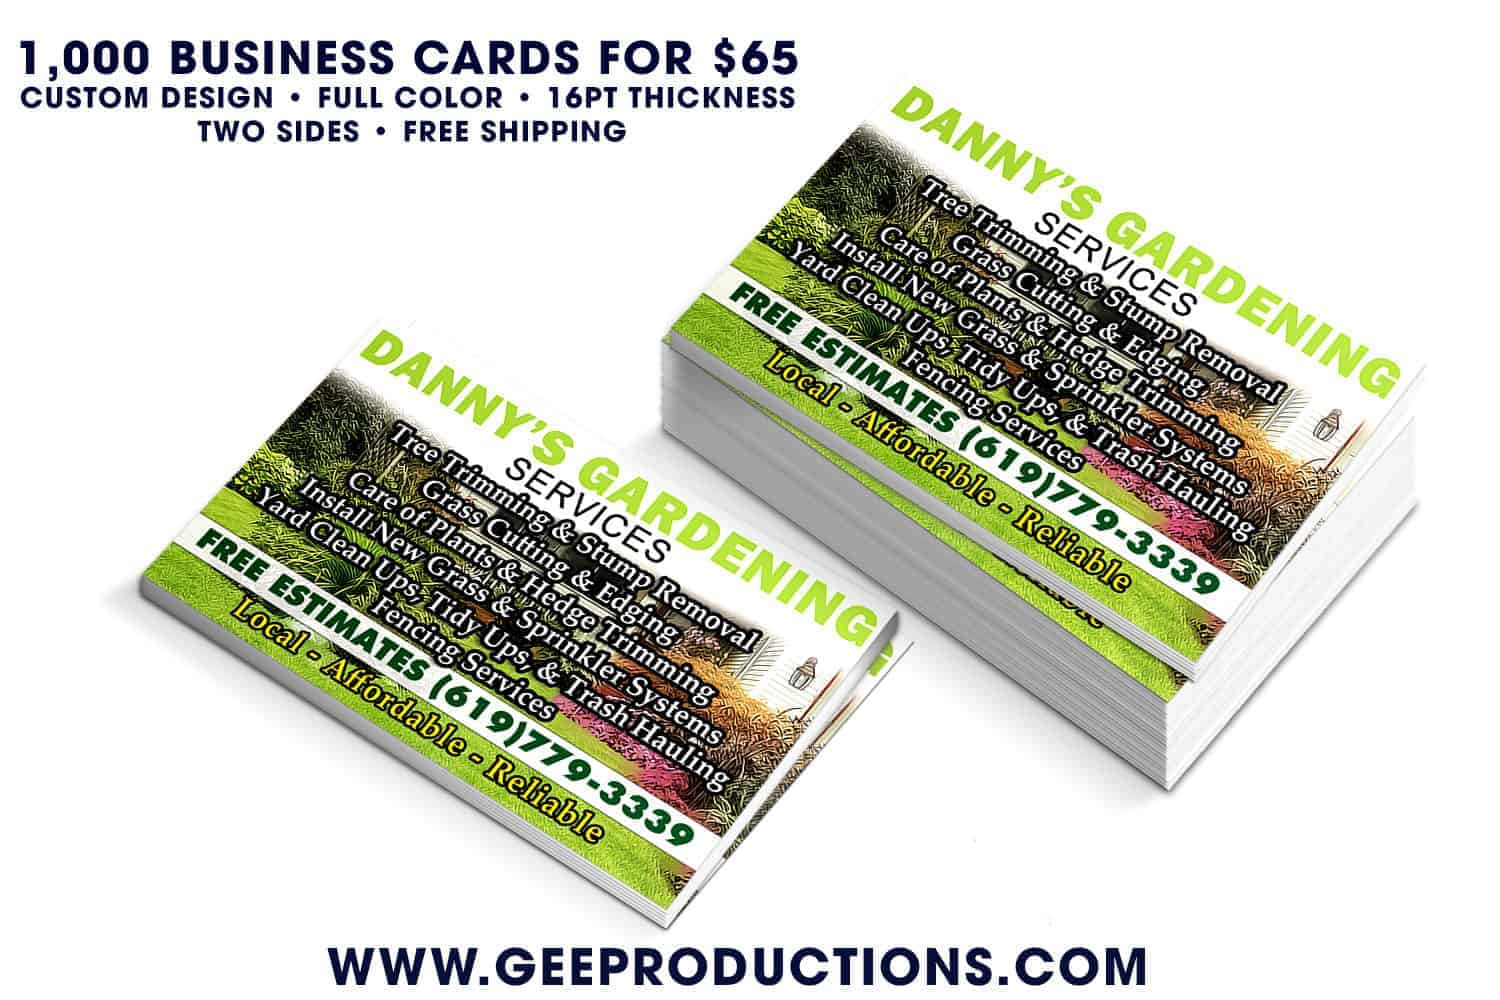 Portfolio dannys gardening services business cards magicingreecefo Image collections